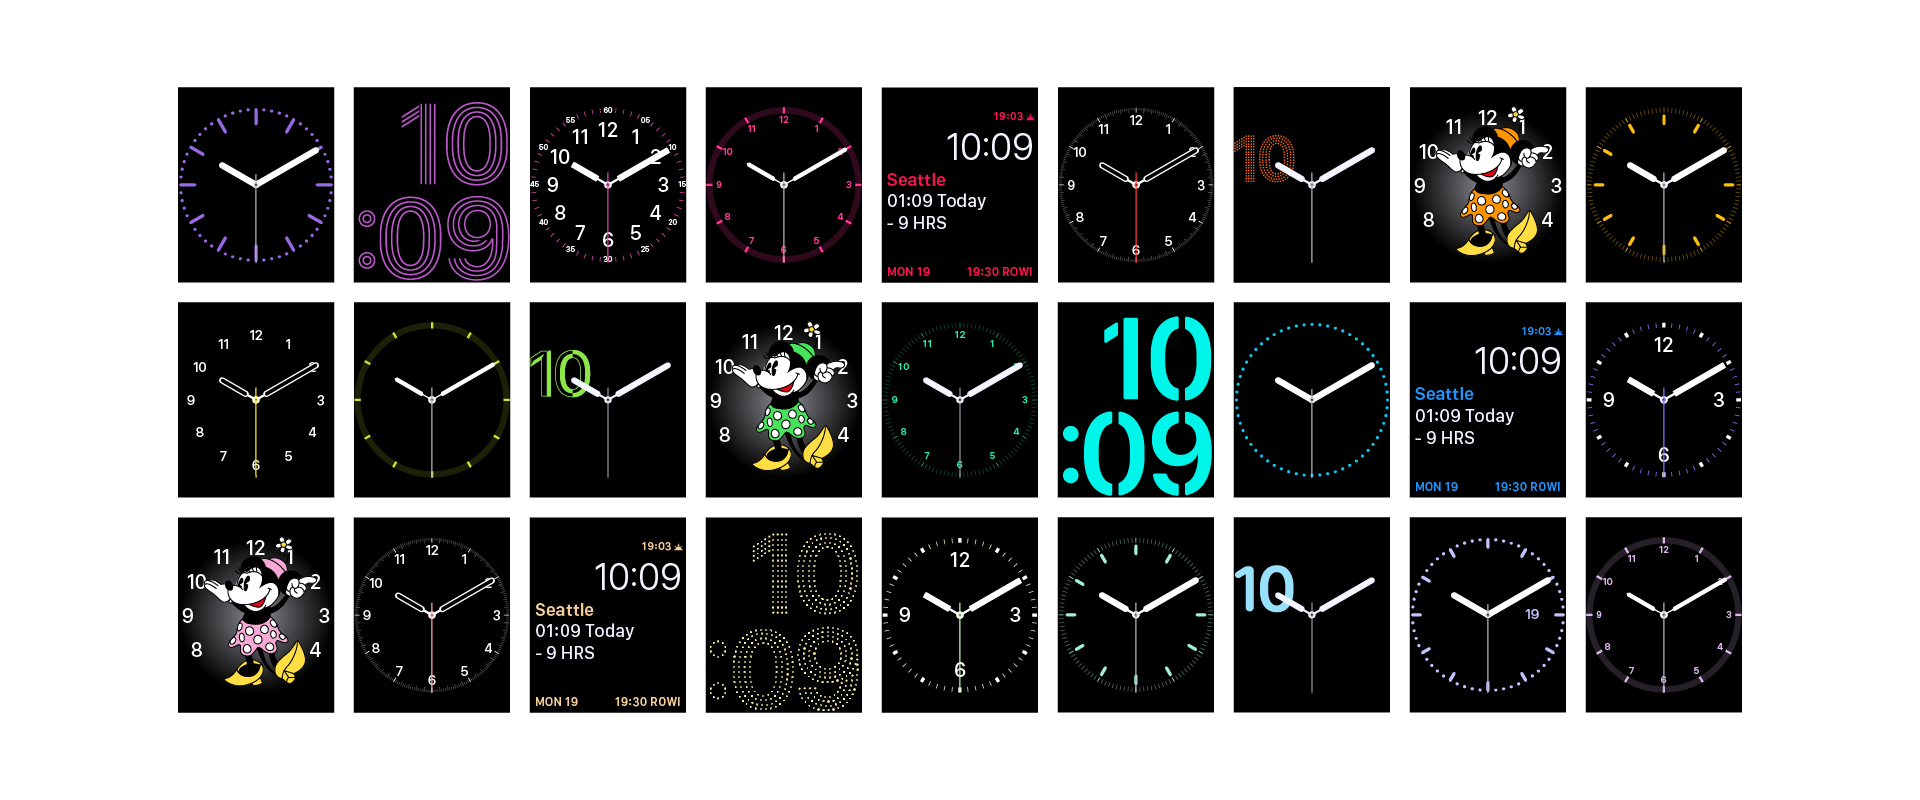 WatchOS applied colors